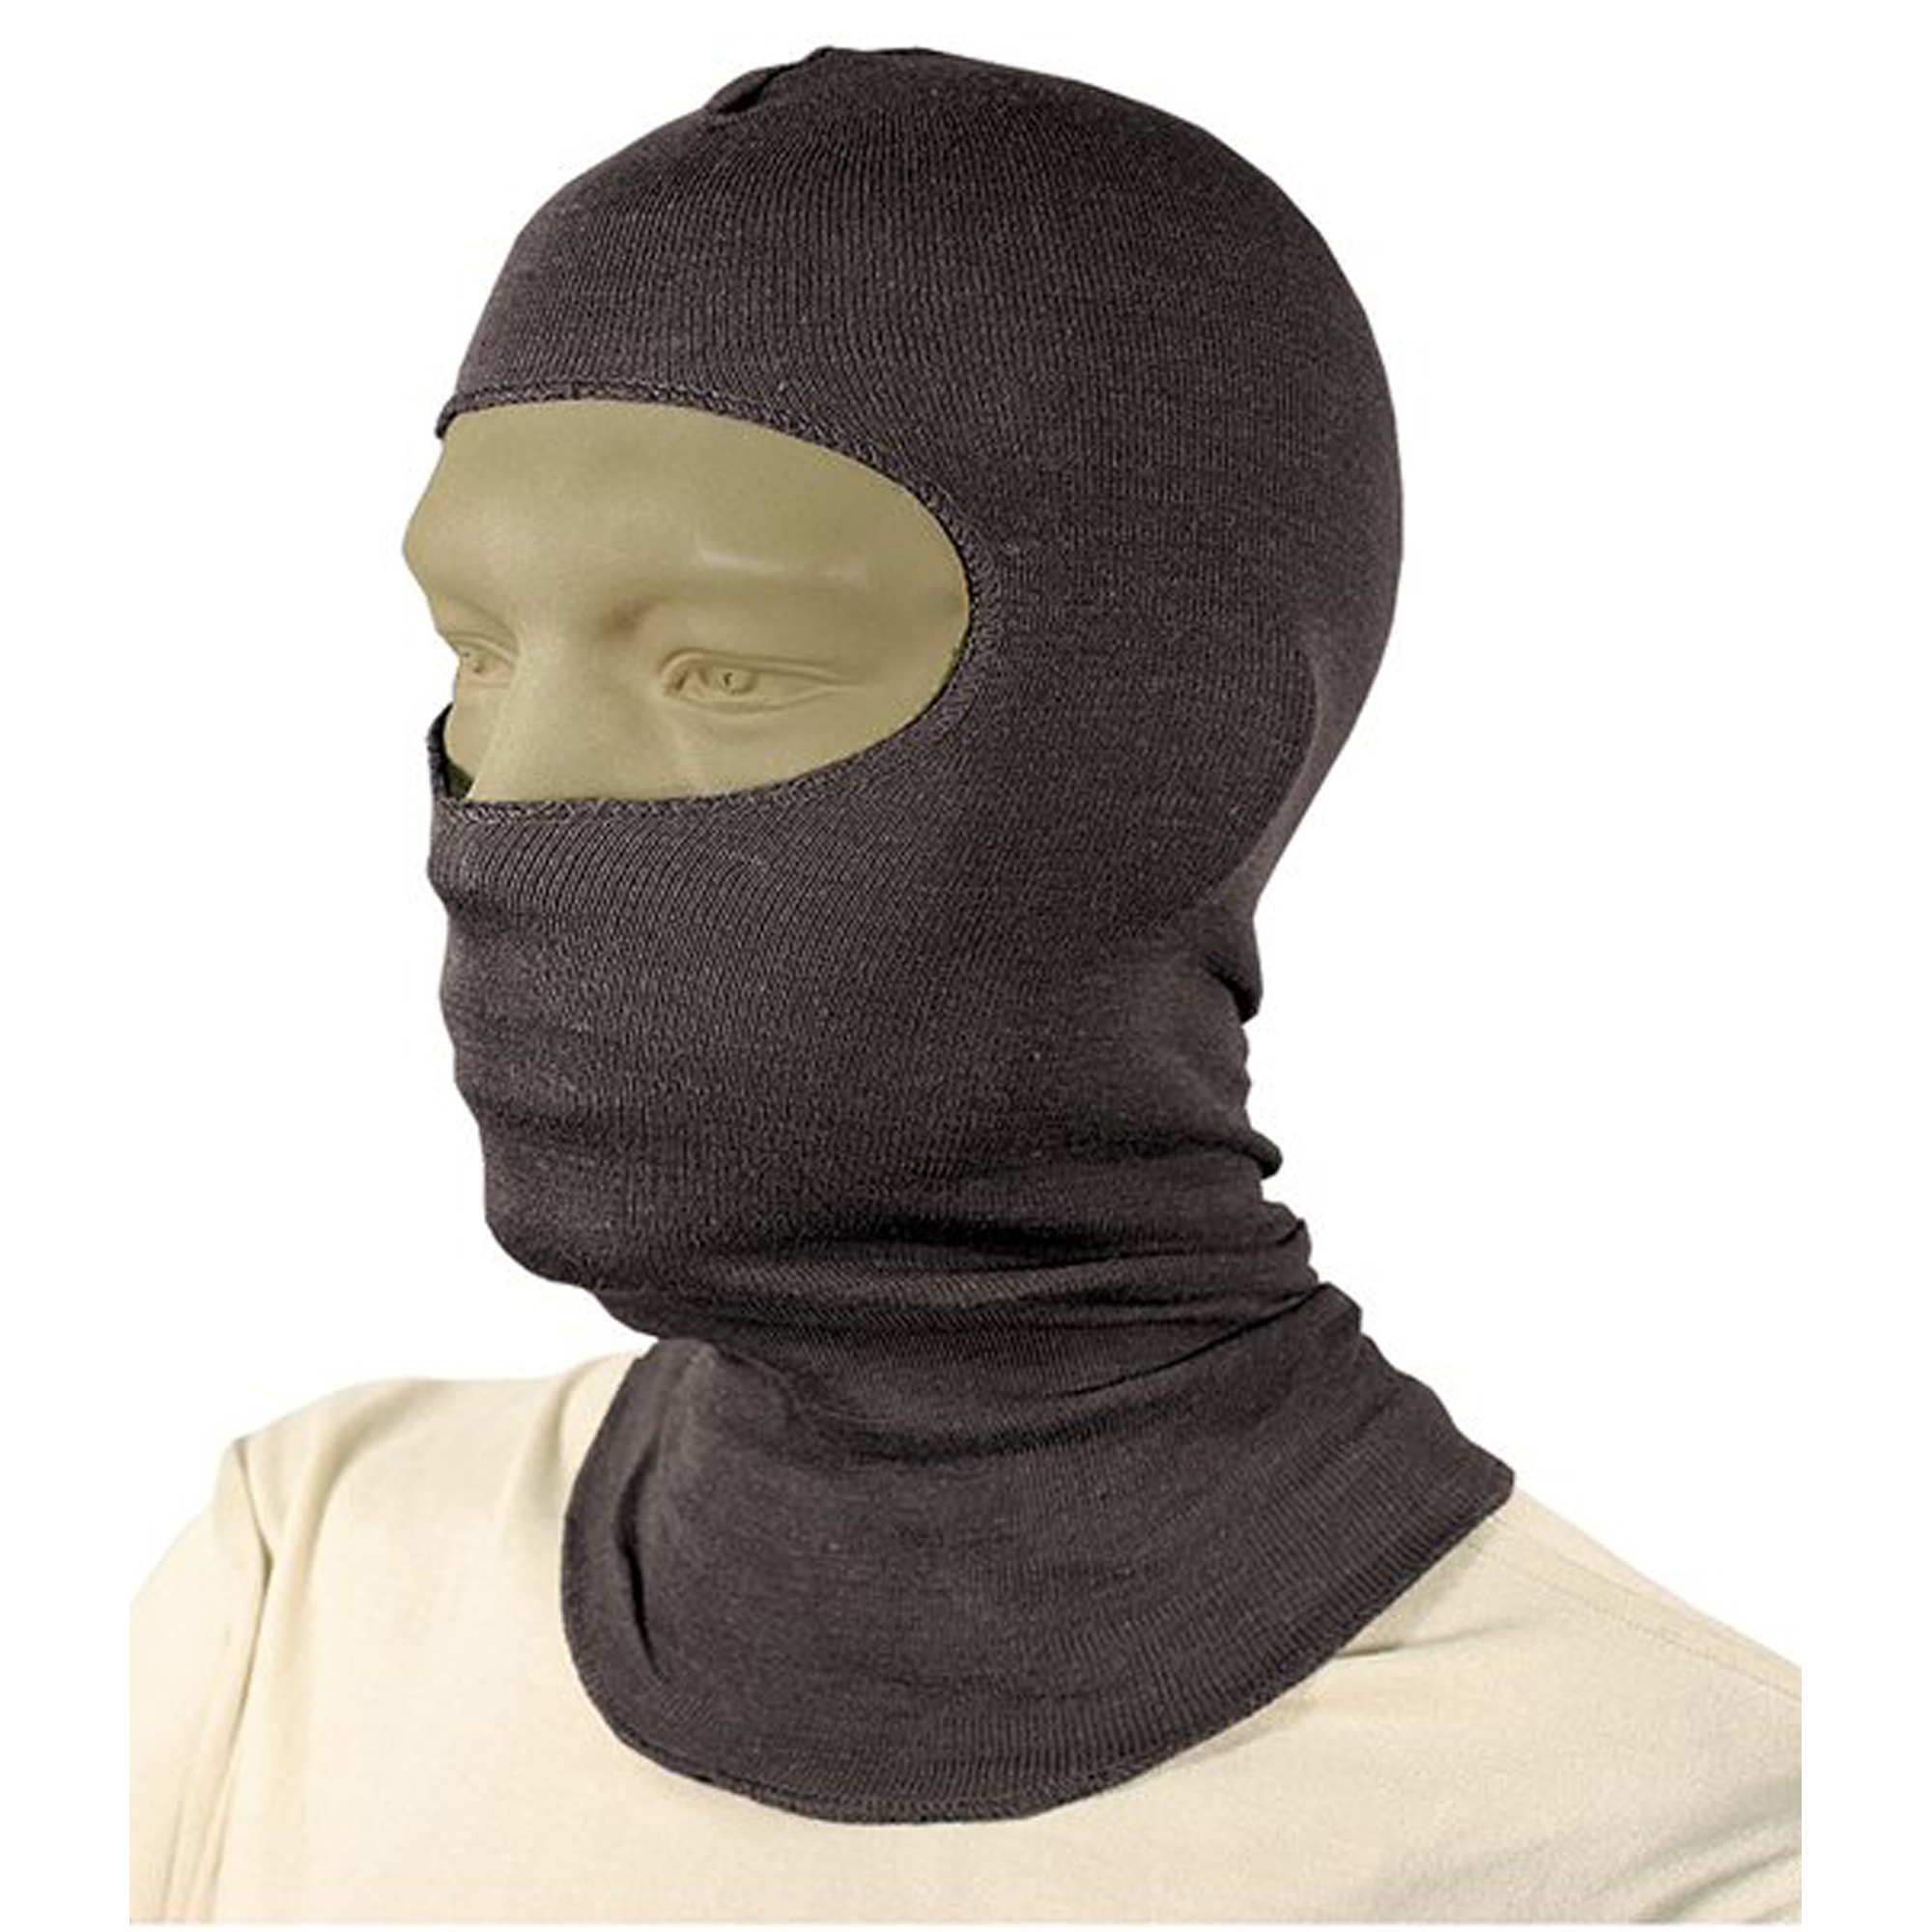 A lighter balaclava option that still retains flash/flame protection for your head and neck with NOMEX.